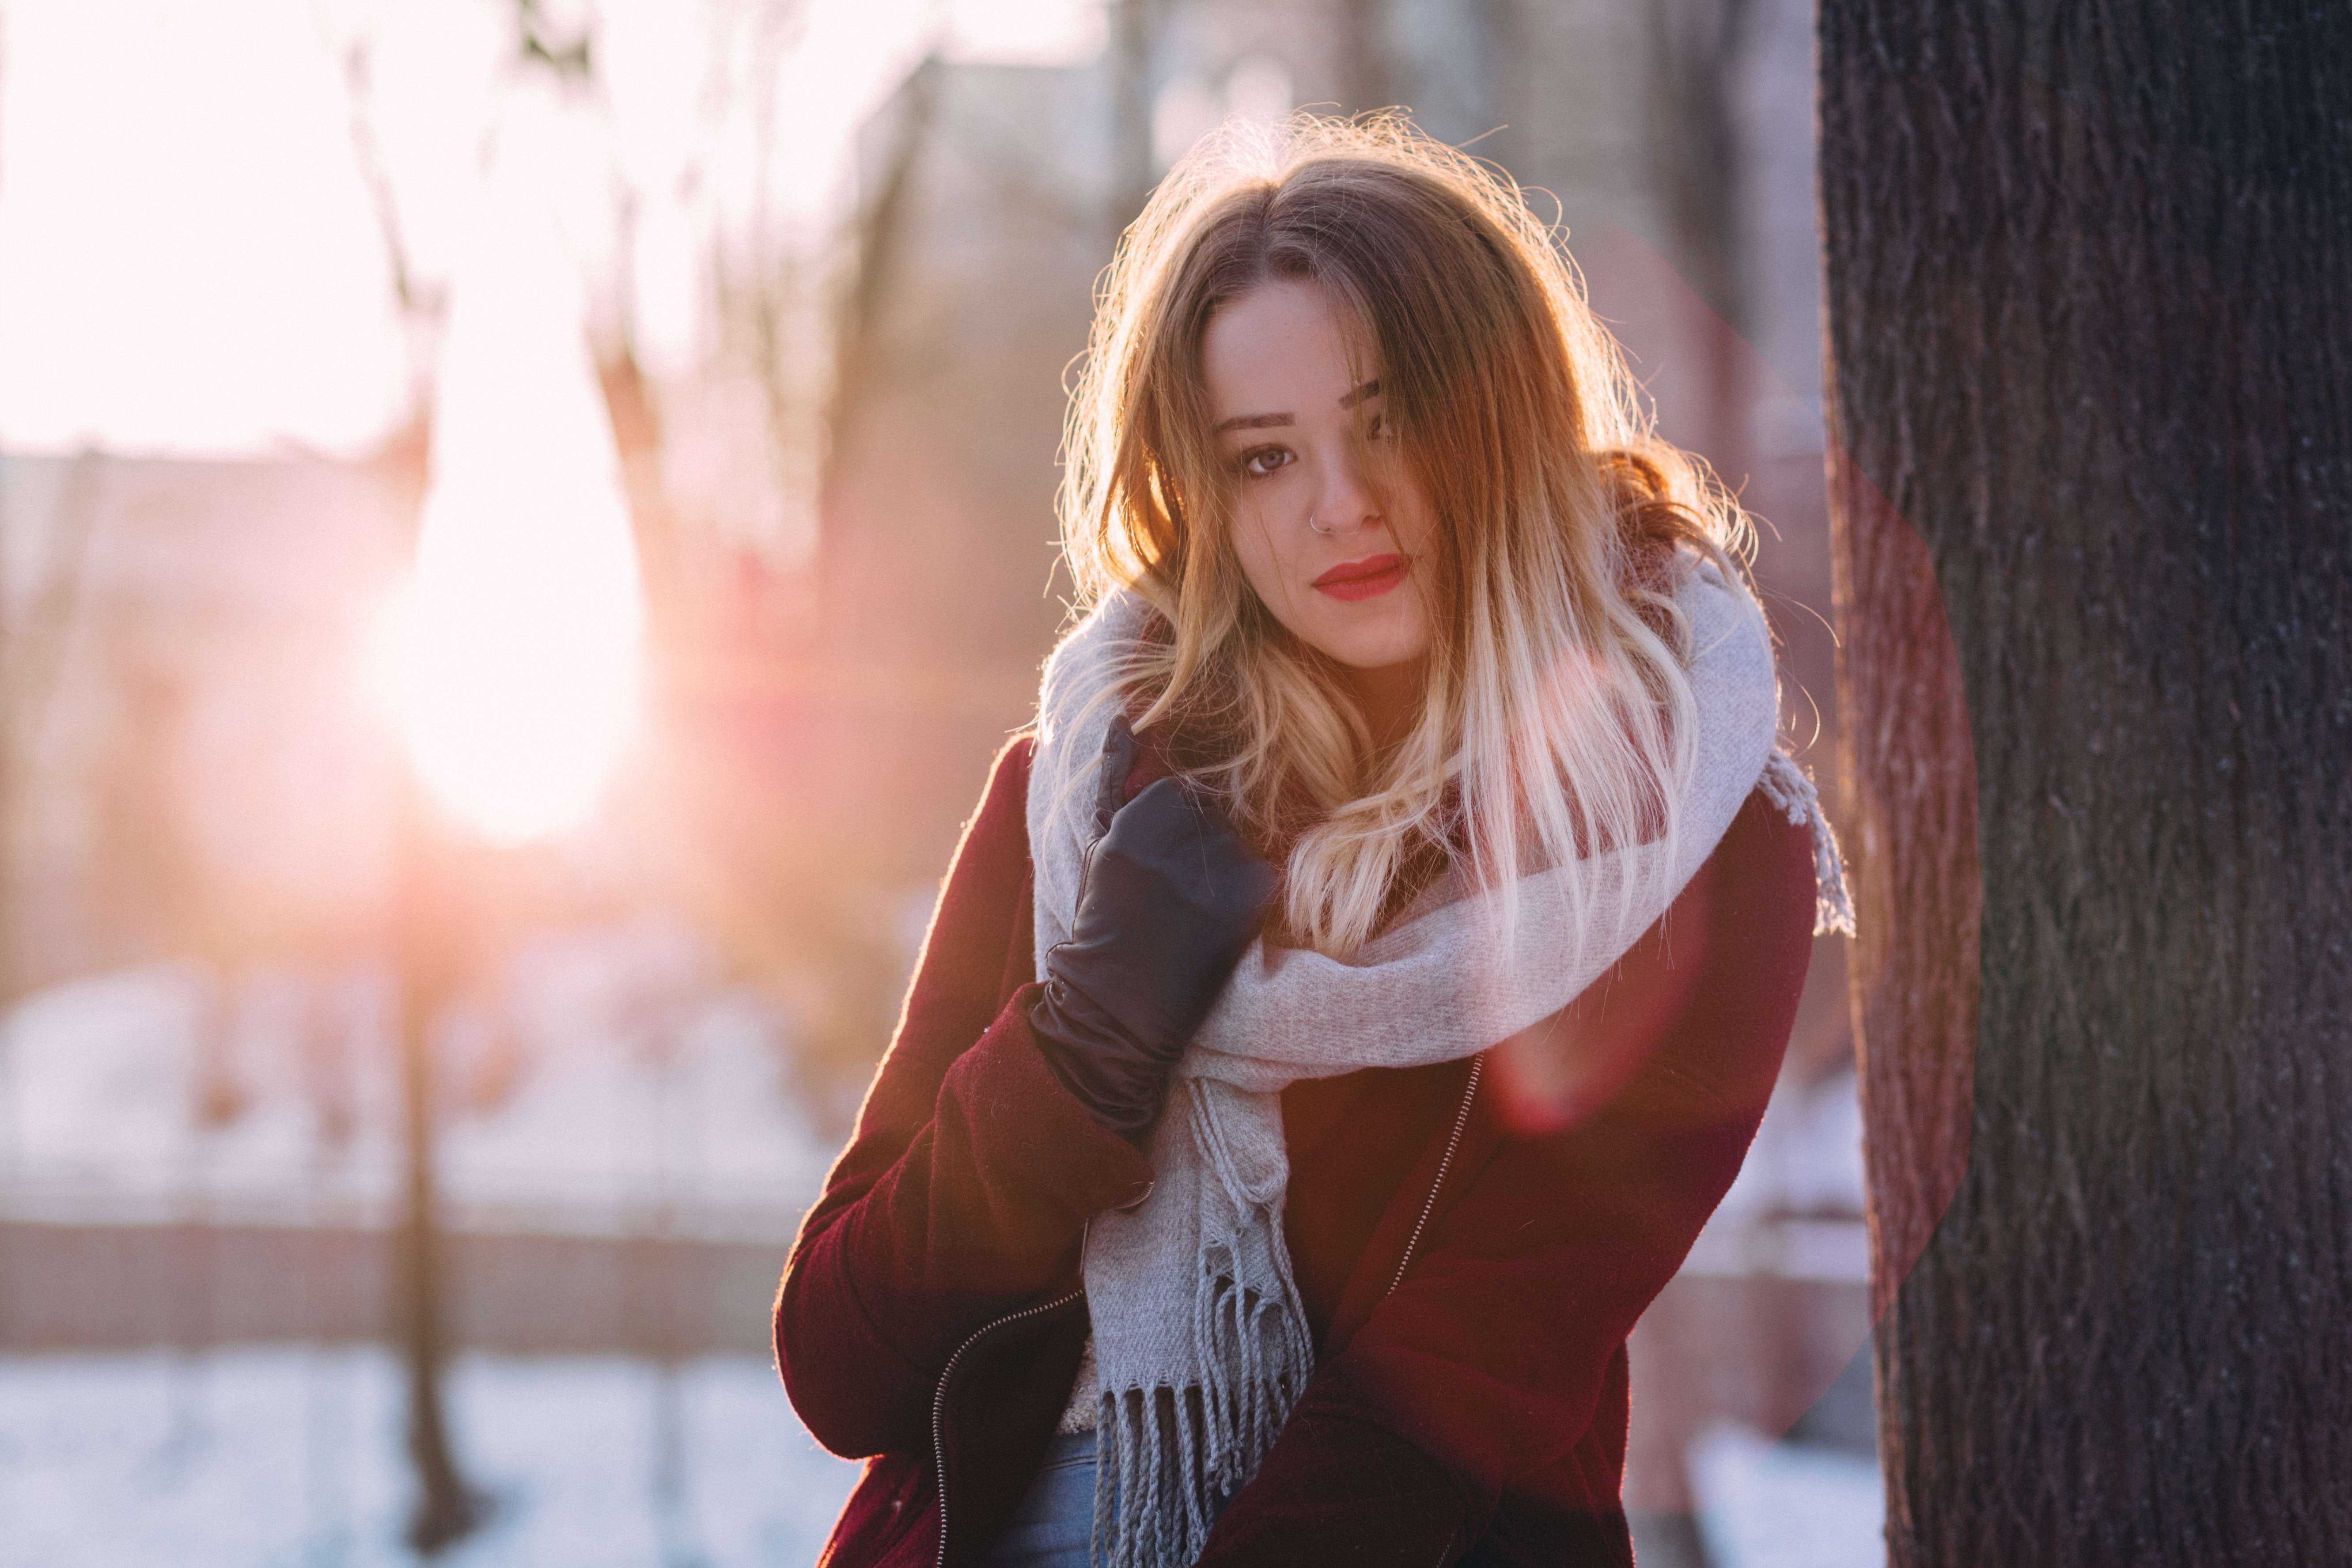 Woman in a winter sweater and fall scarf smiling near a tree outside